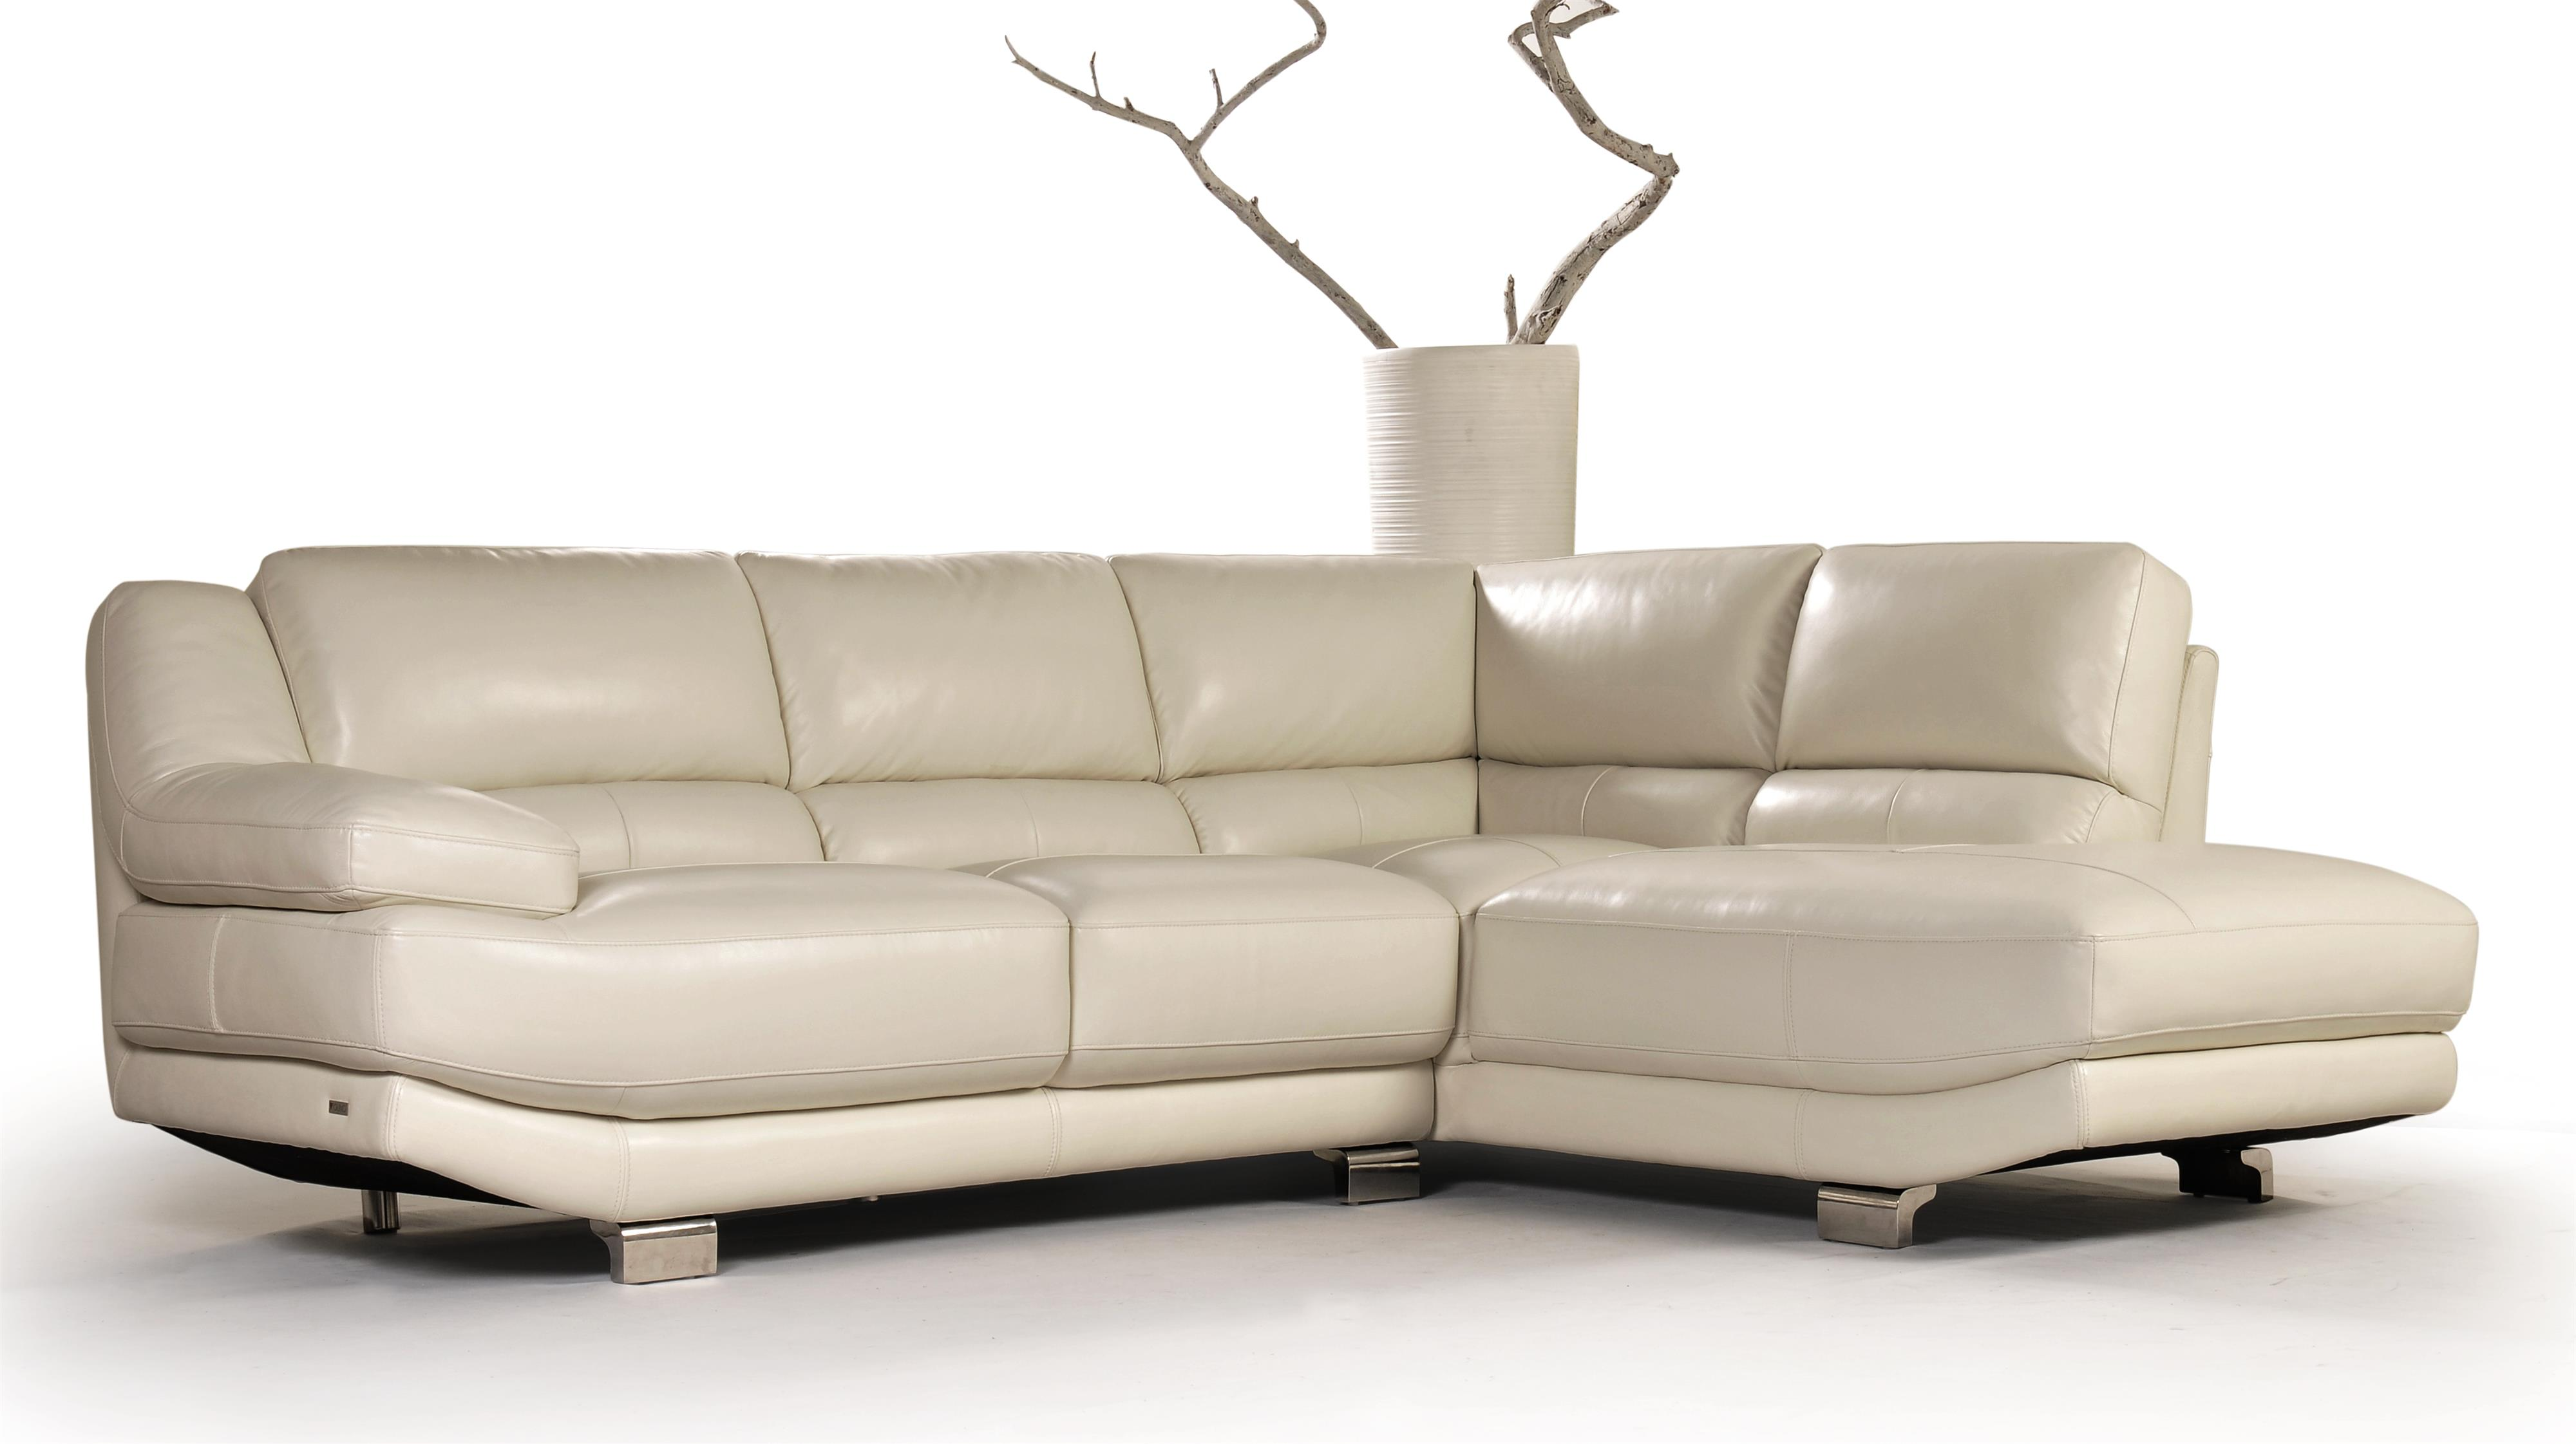 Violino Lennox Sectional HomeWorld Furniture Sectional Sofas